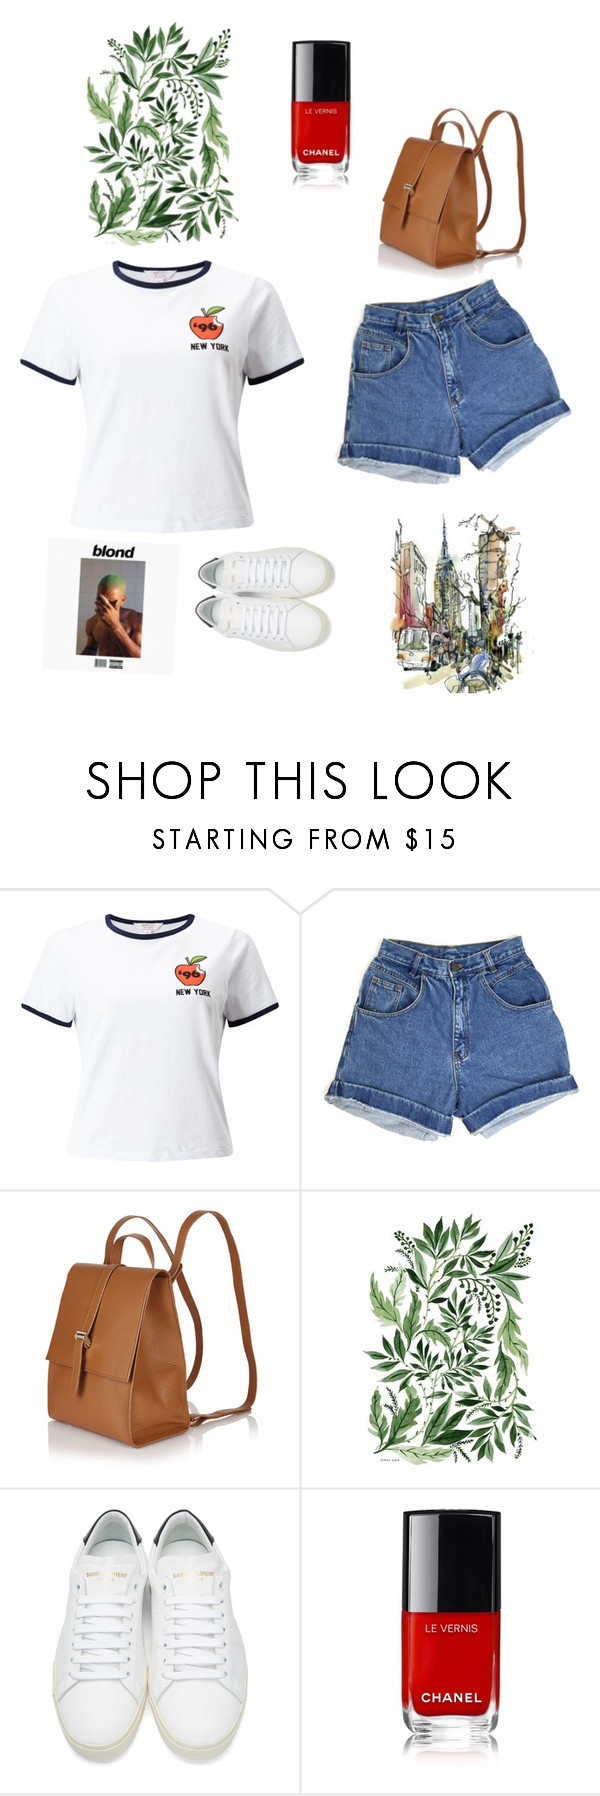 """""""simple//"""" by lyee27 ❤ liked on Polyvore featuring Miss Selfridge, Meli Melo, Yves Saint Laurent and Paul Frank"""